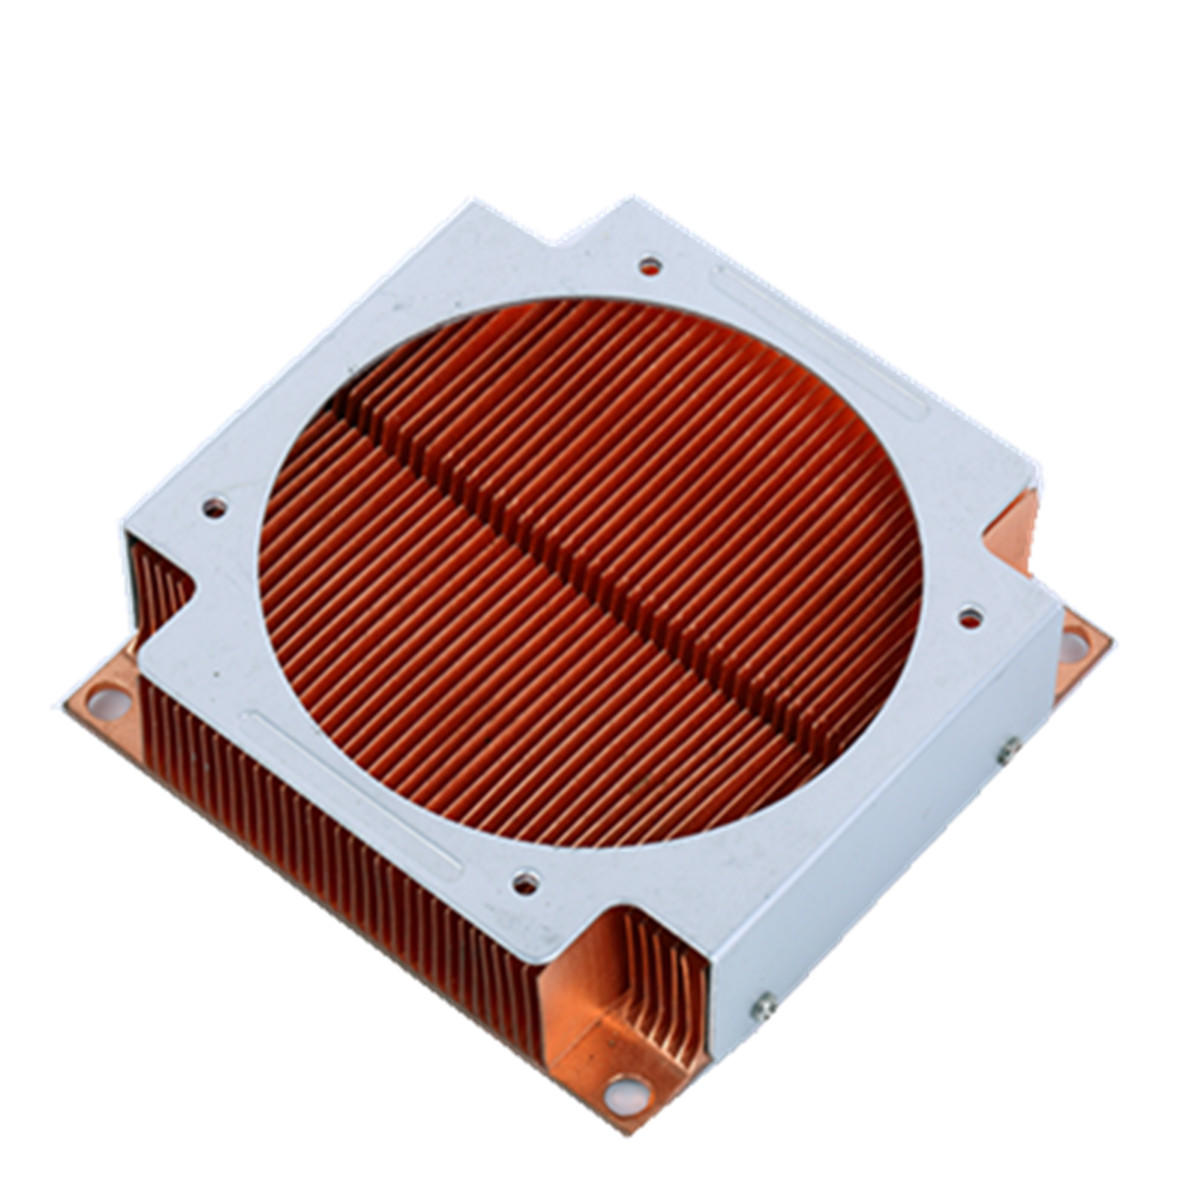 LORI customized heat sink fins from for equipment